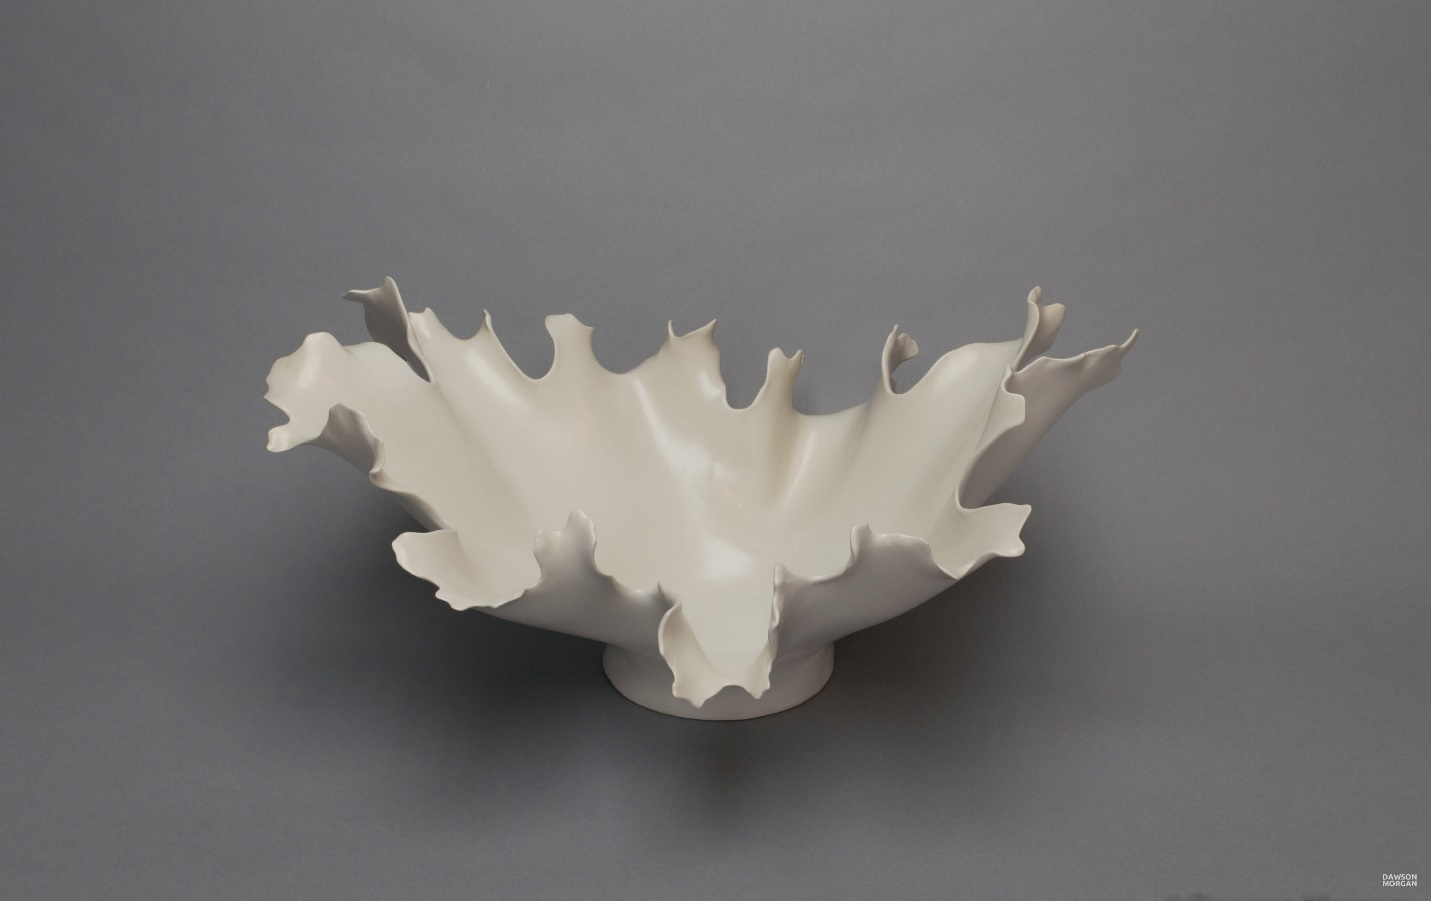 ESAC Solo Exhibit - Splash Bowl